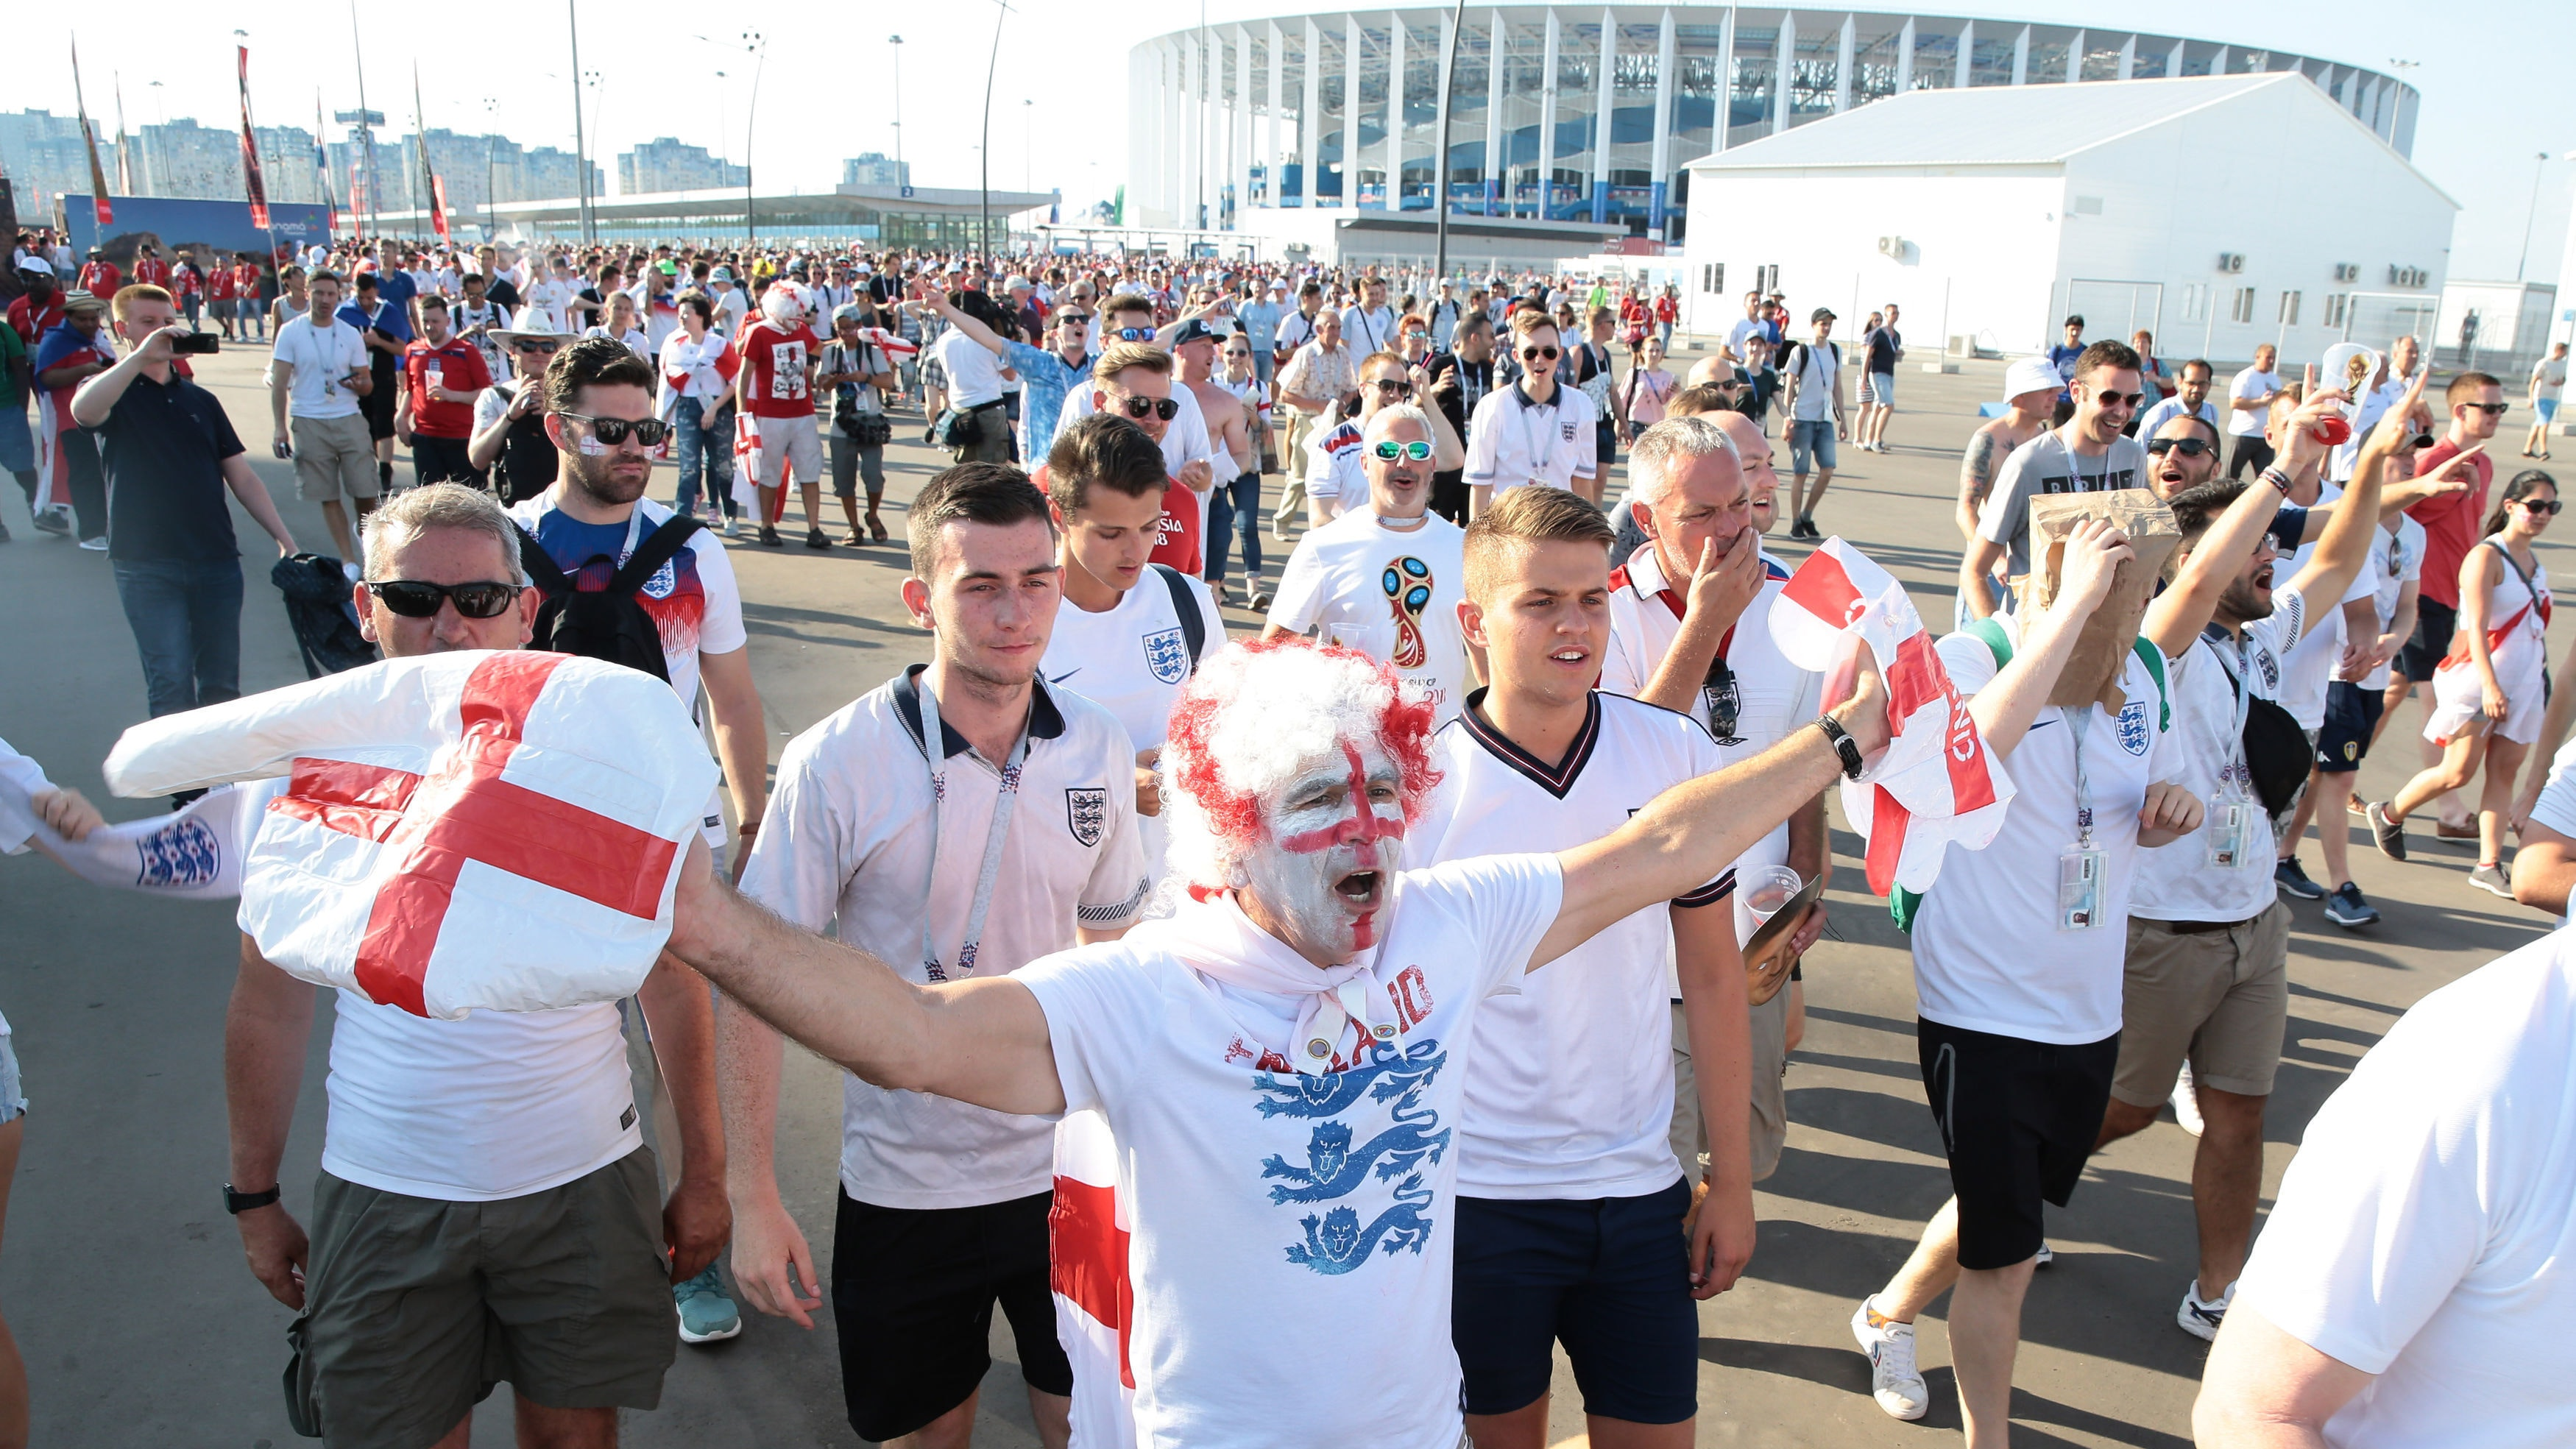 Regrets mixed with pride as England fans digest World Cup heartbreak